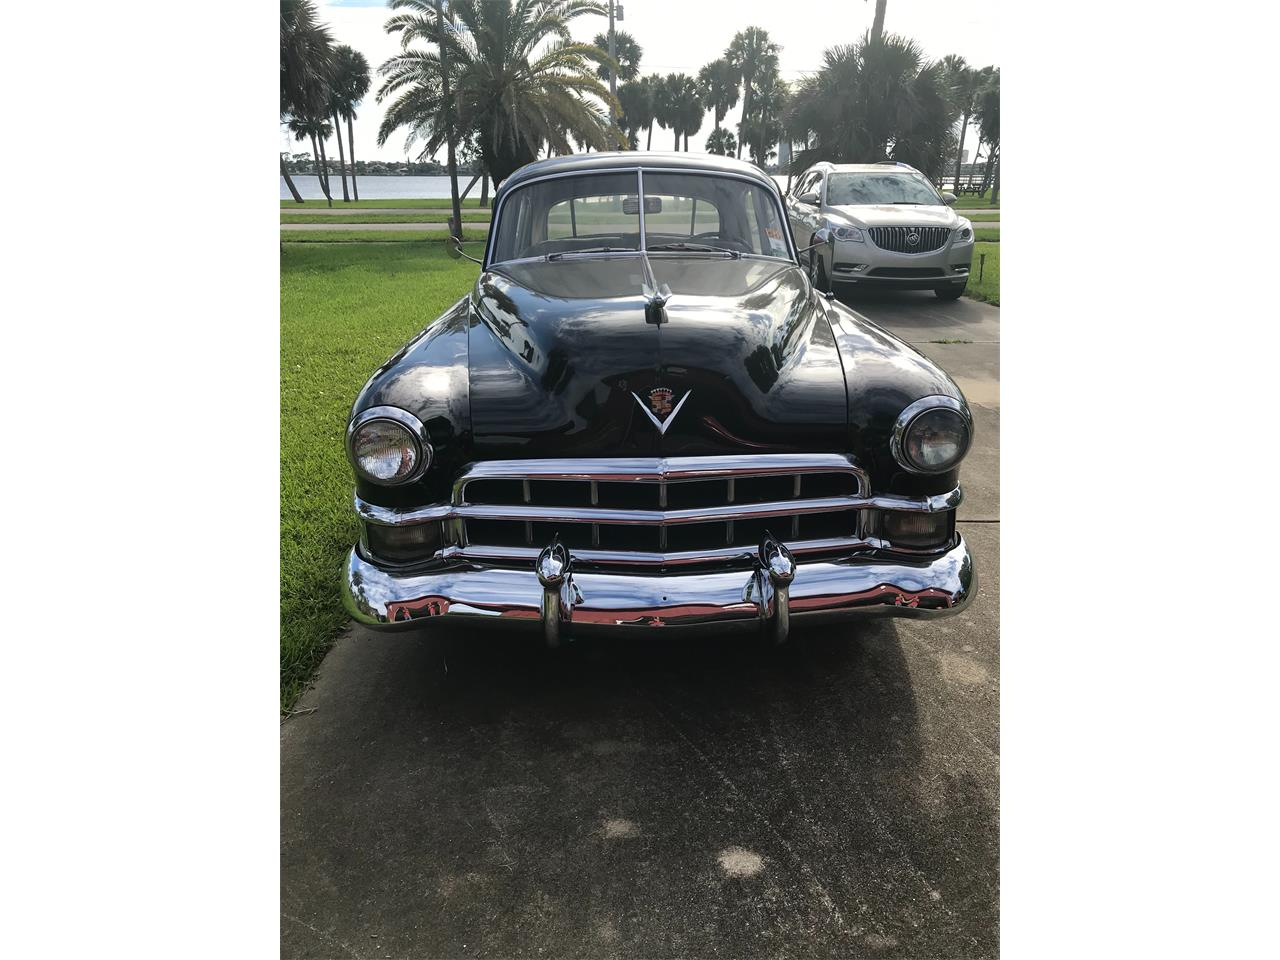 1949 Cadillac 4-Dr Sedan for sale in Land O Lakes, FL – photo 3